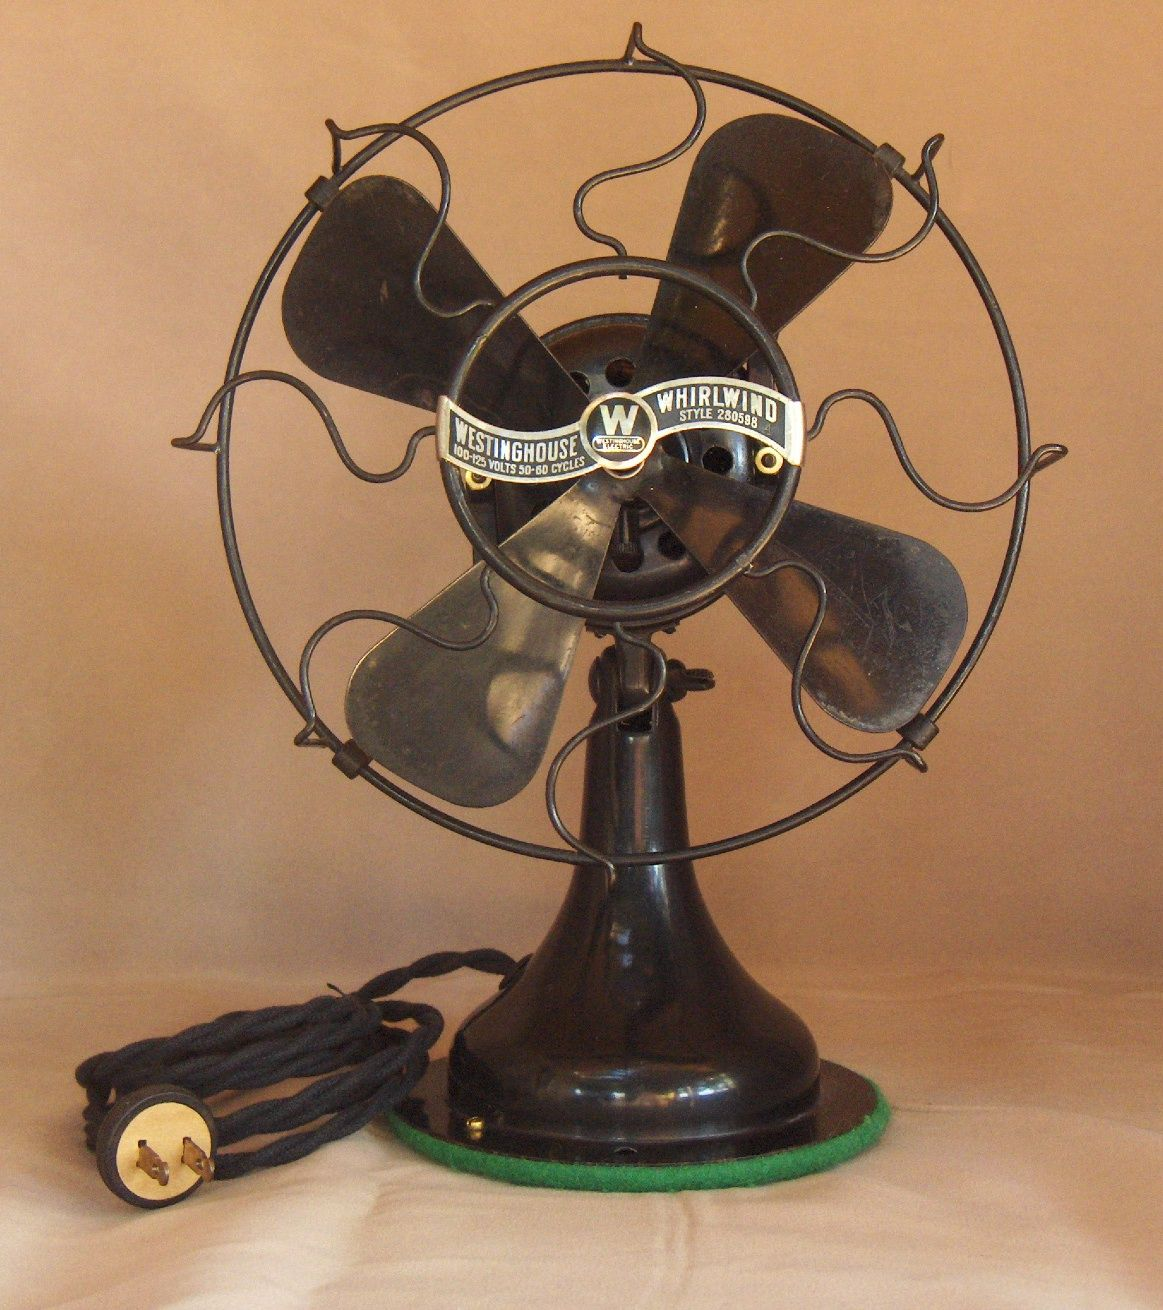 Vintage Fan fan lovewestinghouse circa 1917 | my antiques love